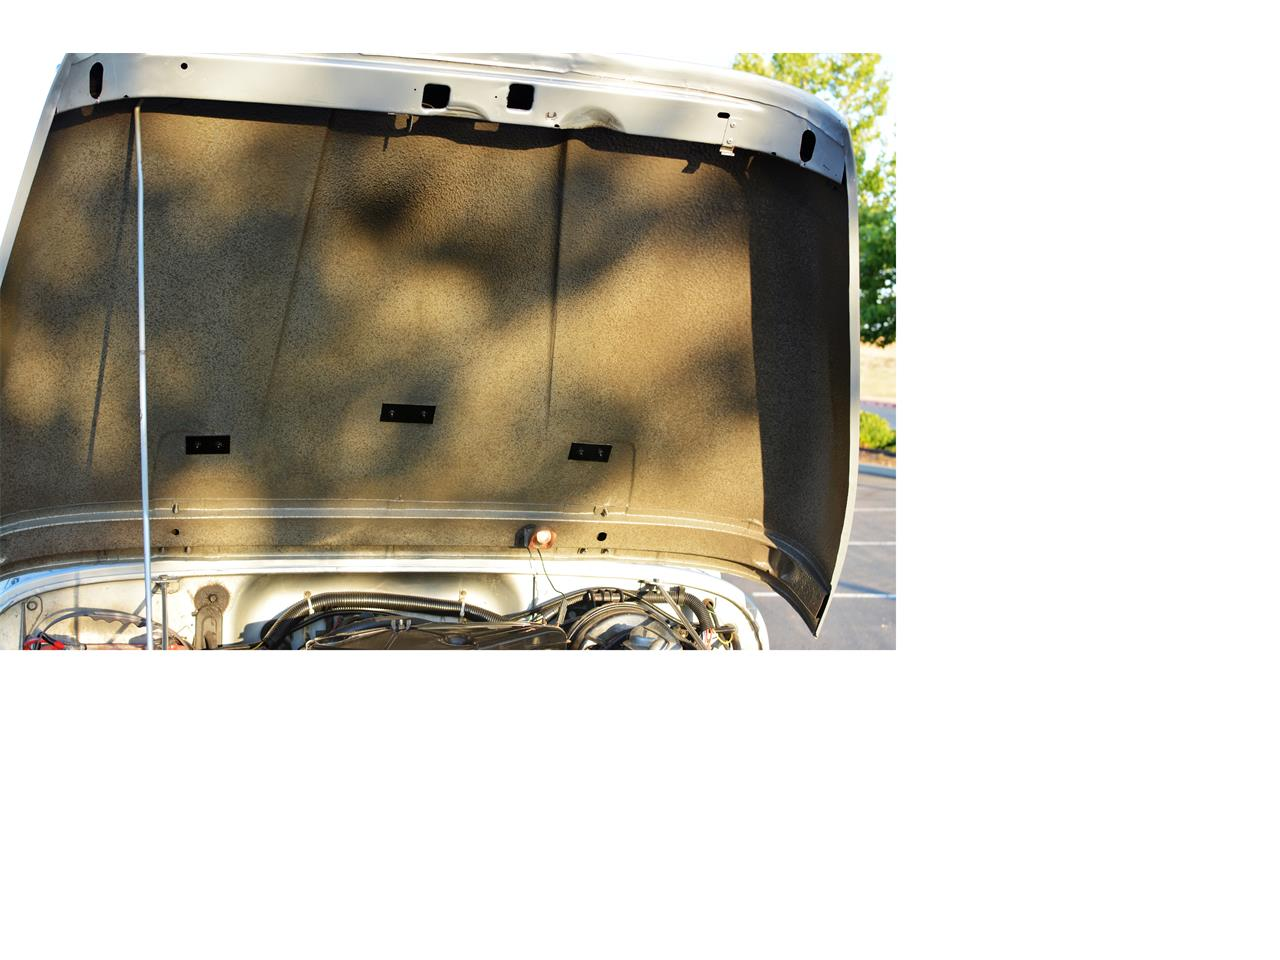 Large Picture of '83 Jeep Wrangler - $17,500.00 Offered by a Private Seller - LHRY